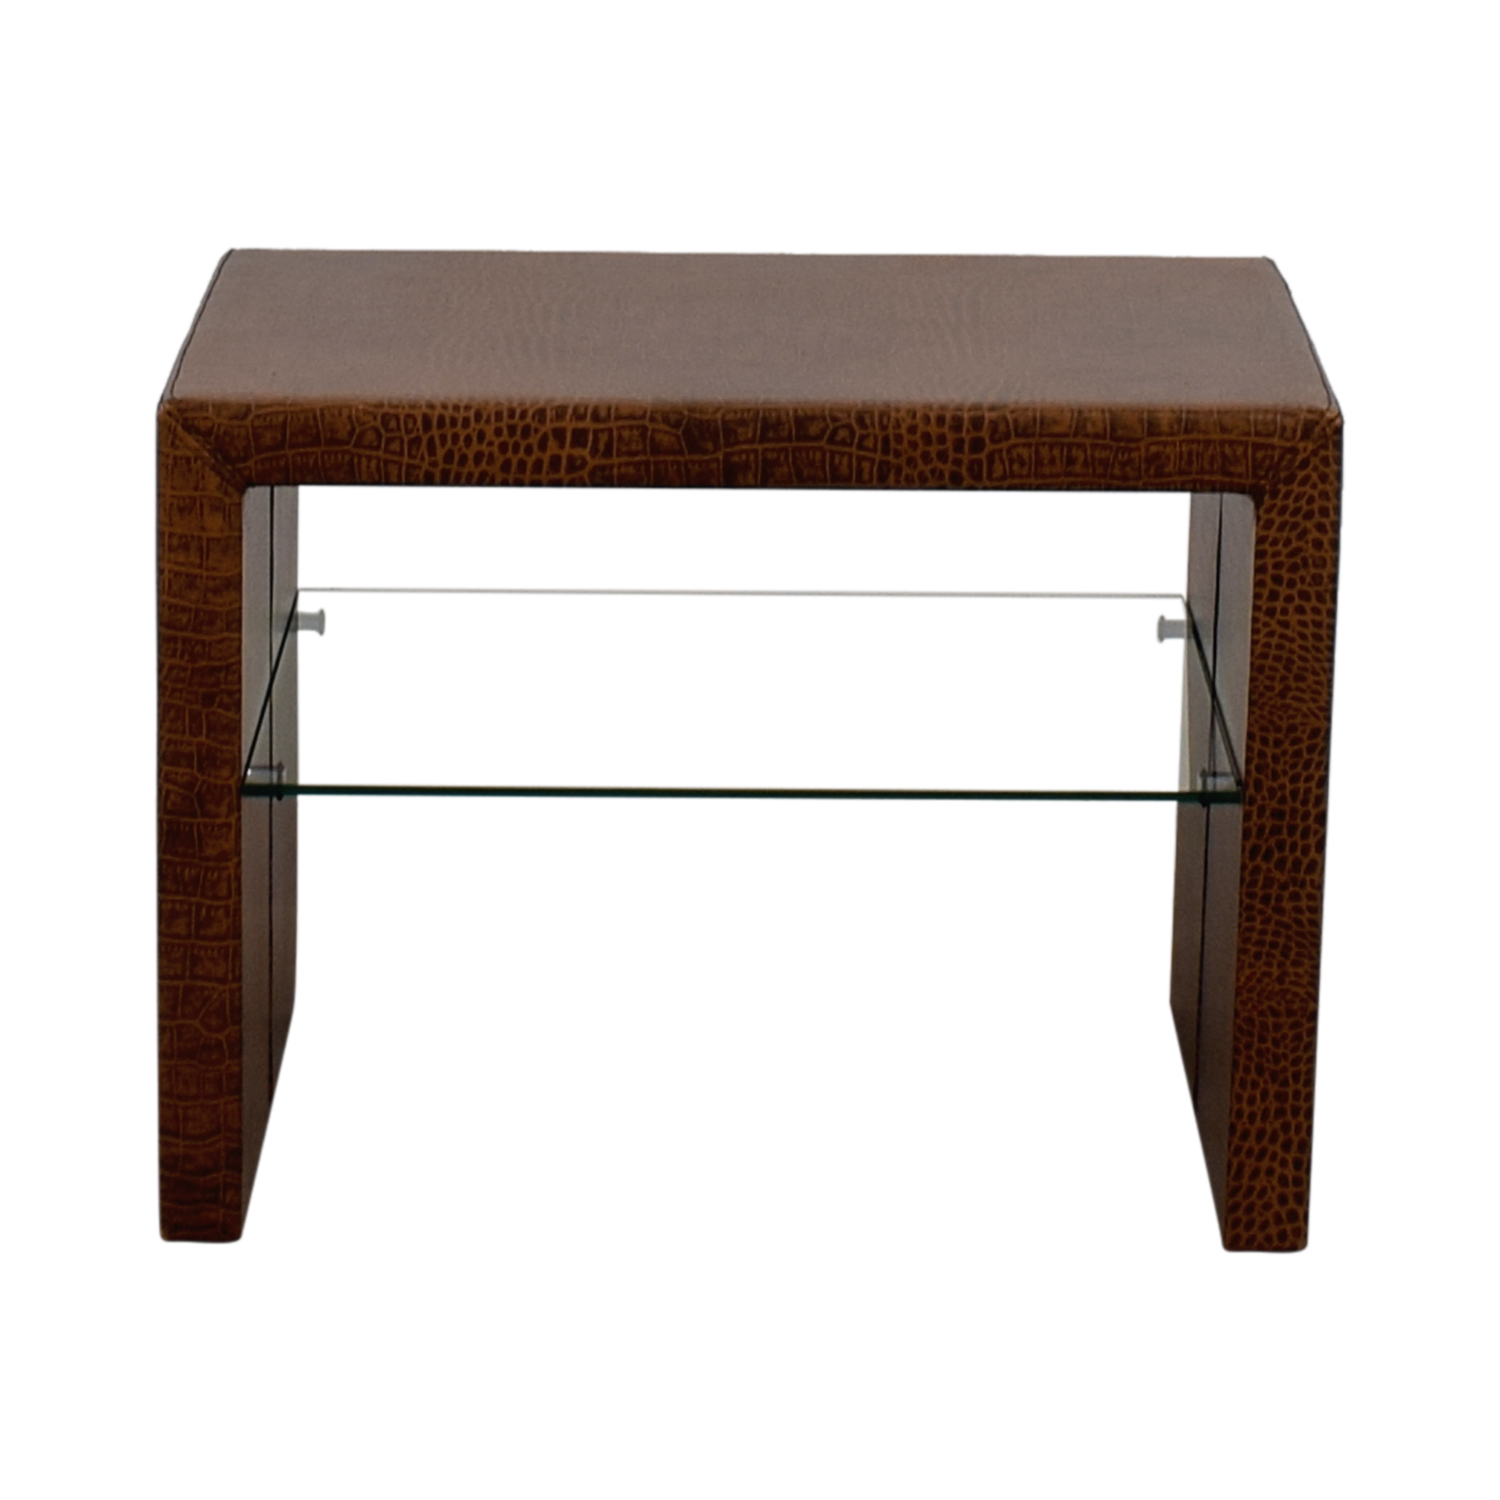 Crate & Barrel Crate & Barrel Brown Table with Glass Shelf Tables